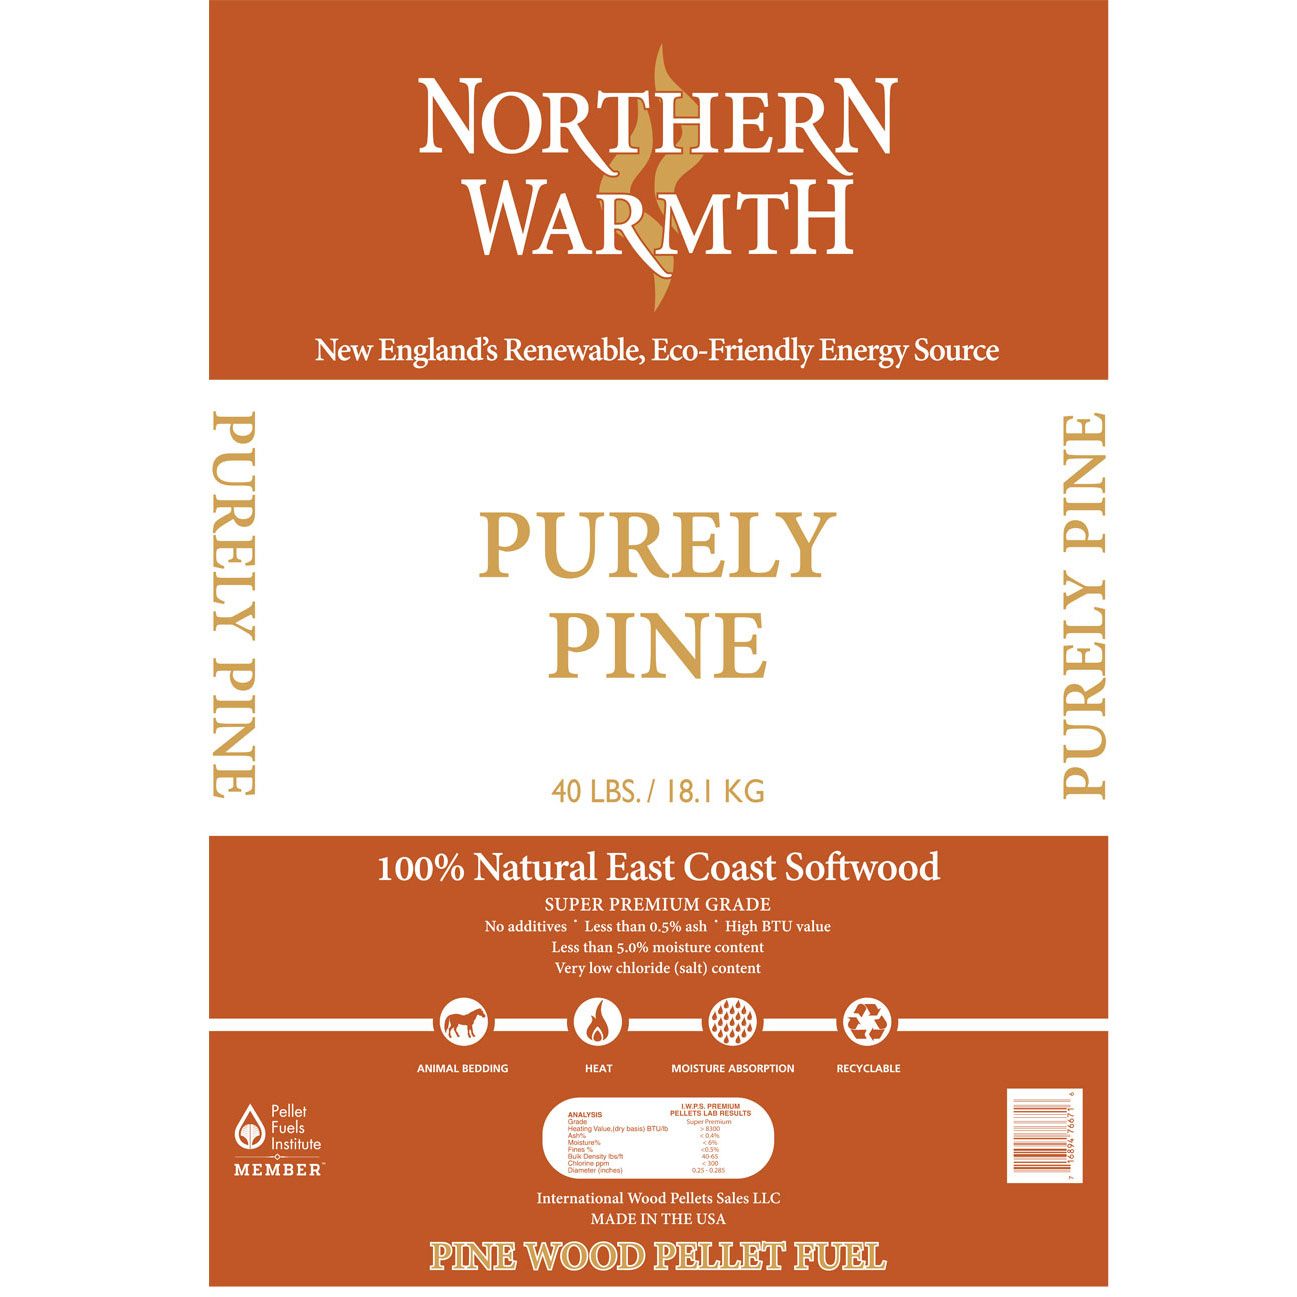 purley-pine